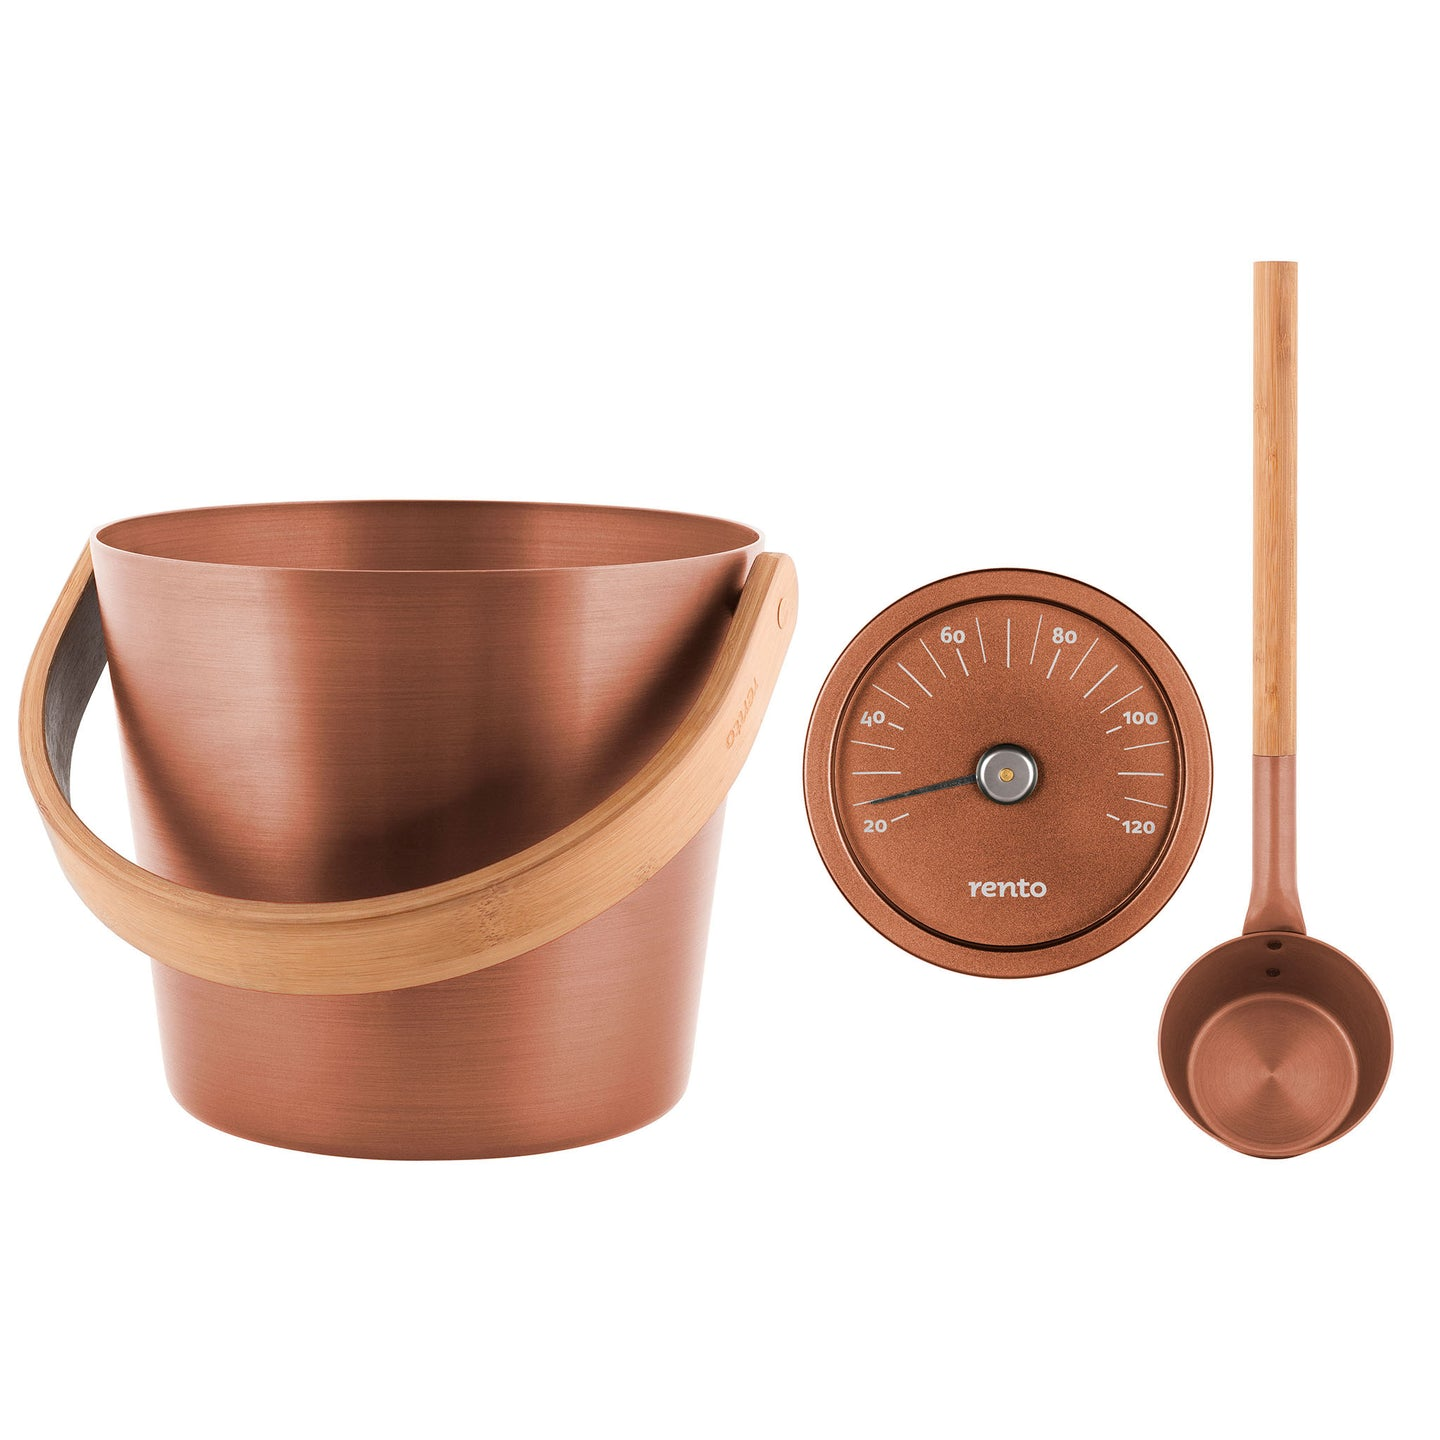 Rento Copper Anodised Aluminium Sauna Set - Sauna Ladle, Pail & Thermometer Default Title Sauna Accessories Set Finnmark Sauna